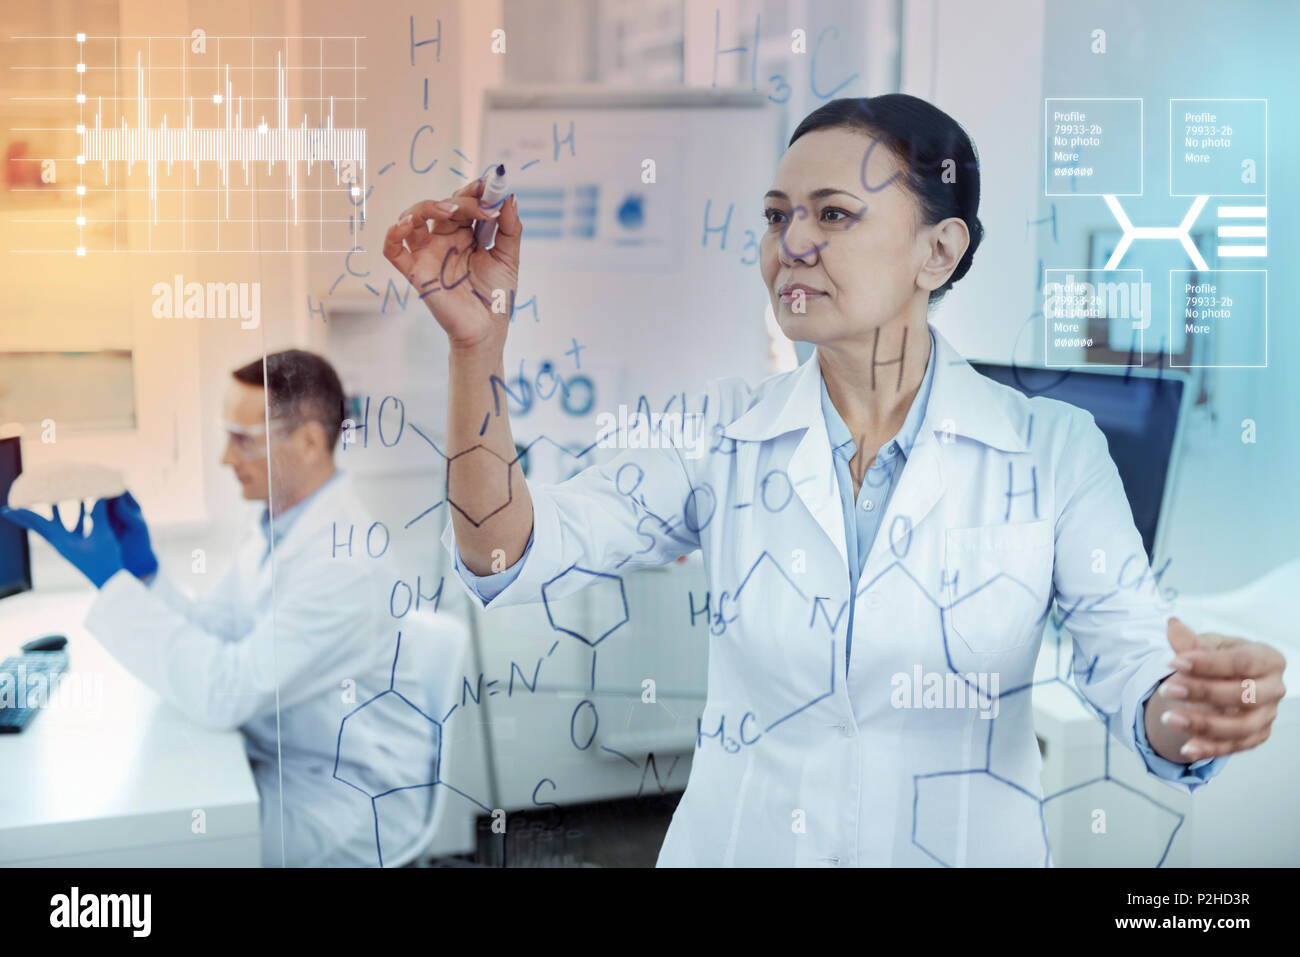 Calm chemist looking concentrated while writing on the transparent board - Stock Image